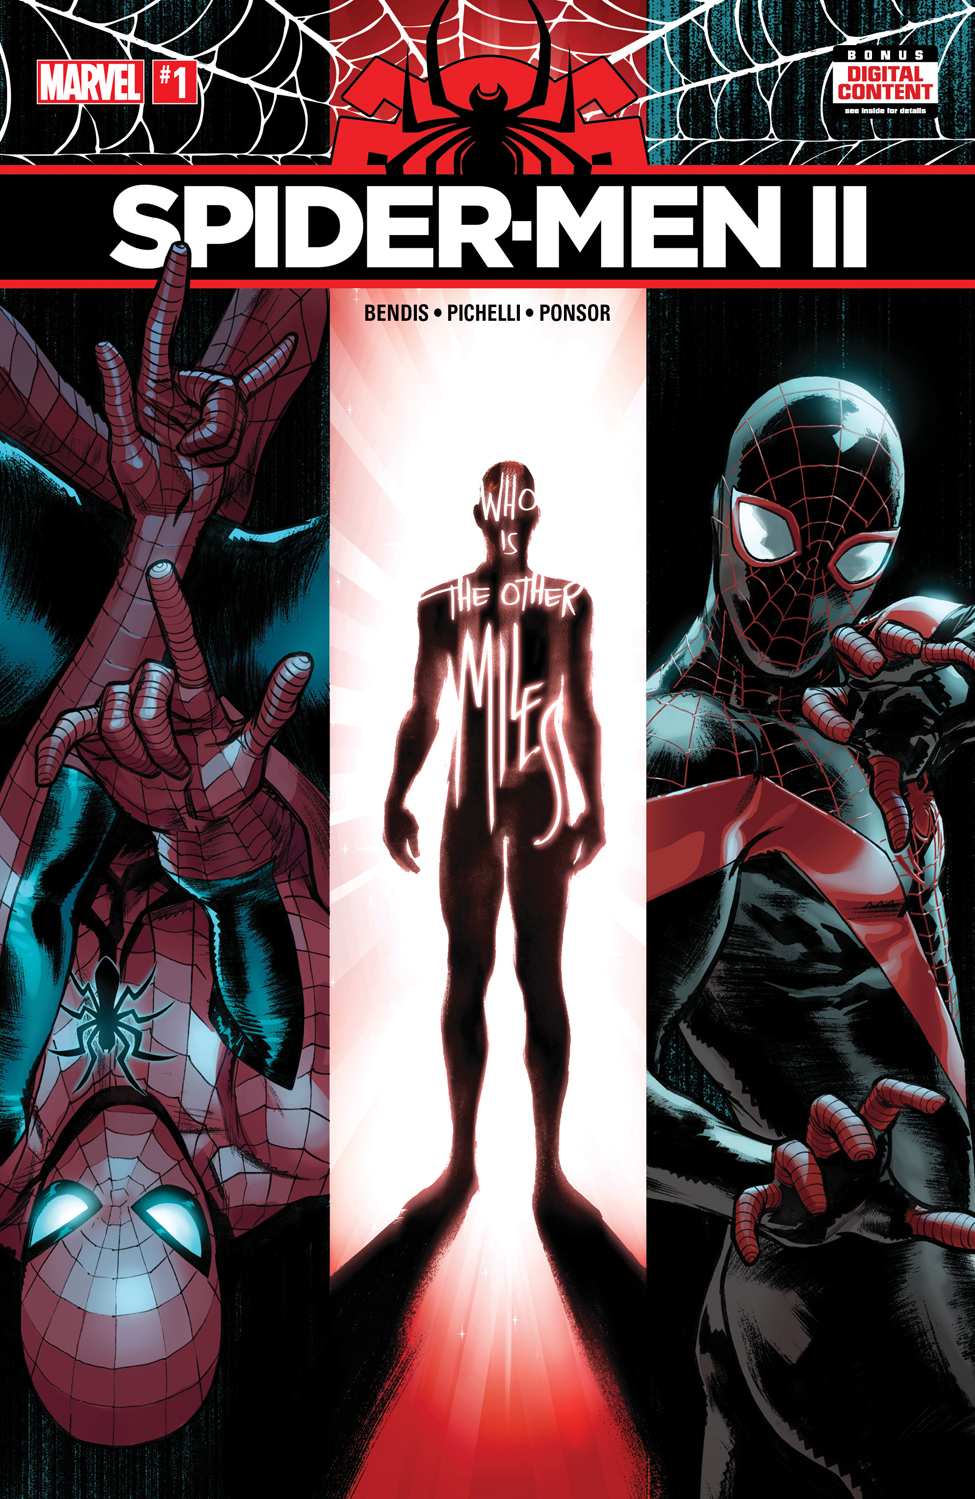 SPIDER-MEN II #1